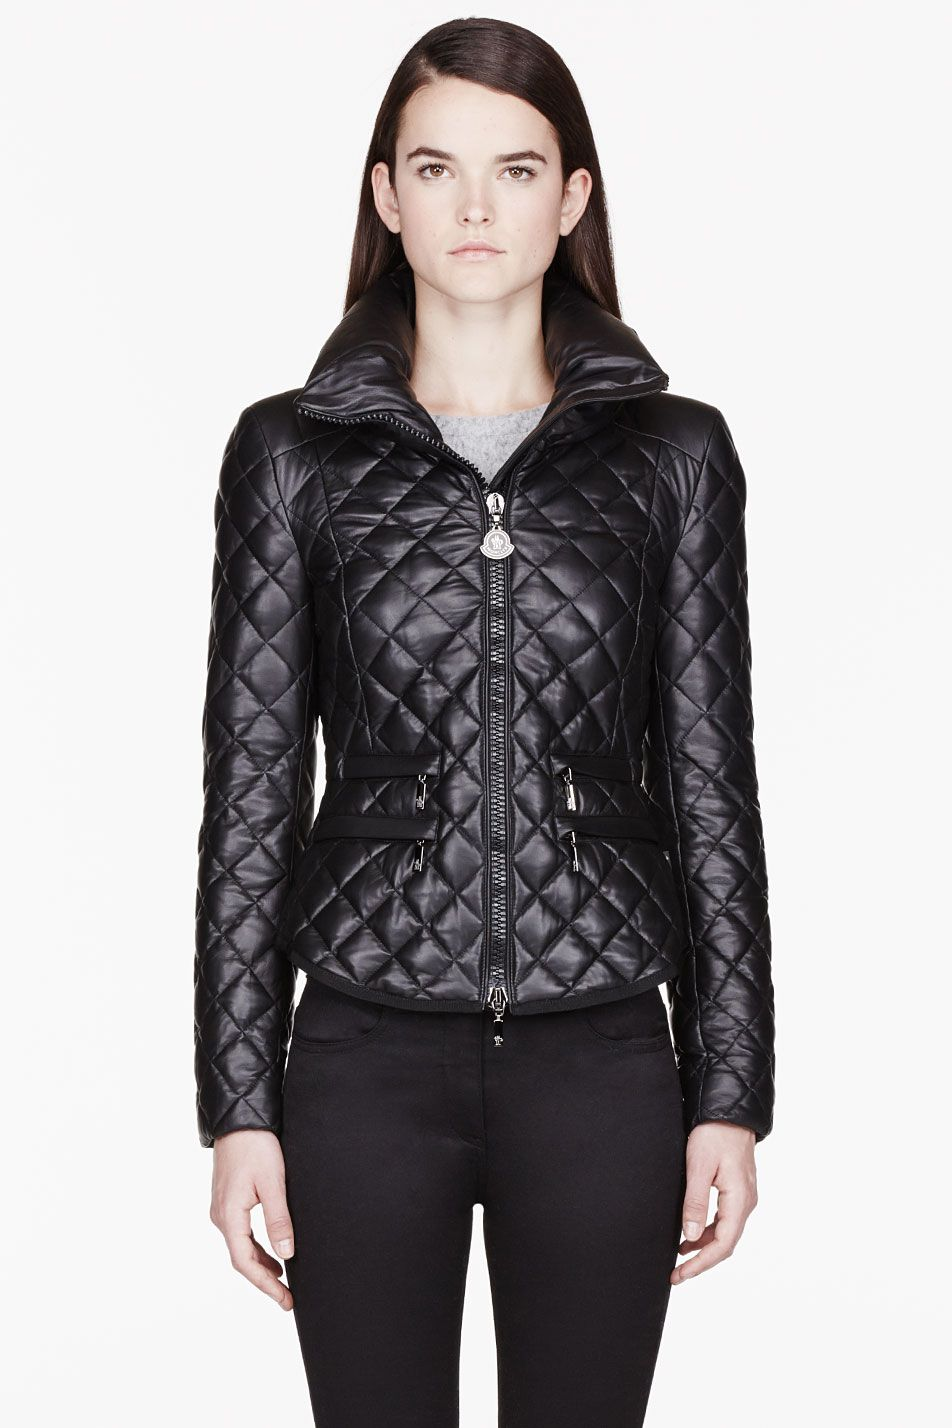 Moncler Black Leather Quilted Jacket Jackets, Quilted